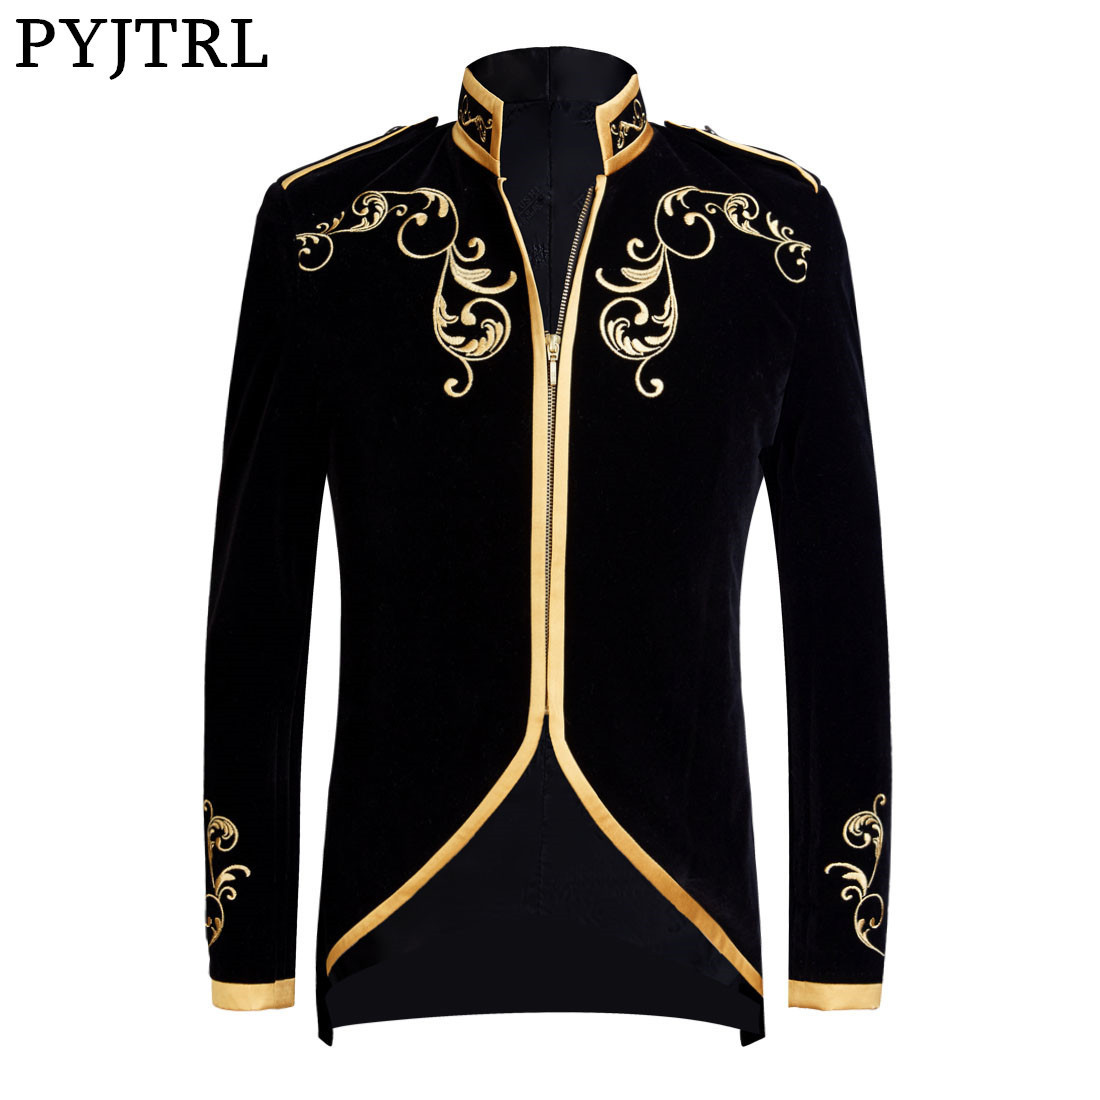 PYJTRL Suit Jacket Coat Blazer Wedding Embroidery Slim-Fit Velvet Gold Palace-Prince